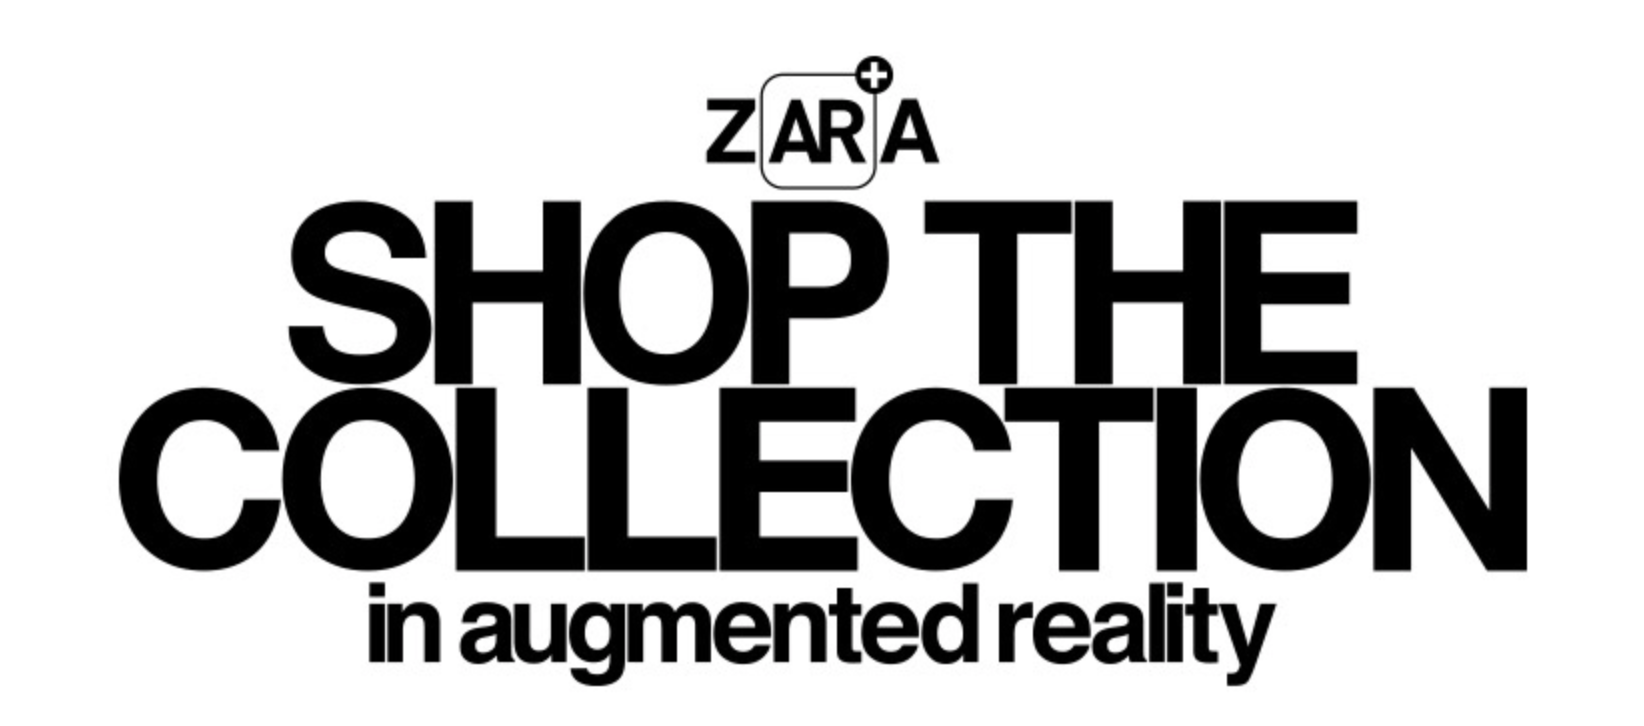 Zara augmented reality mobile app